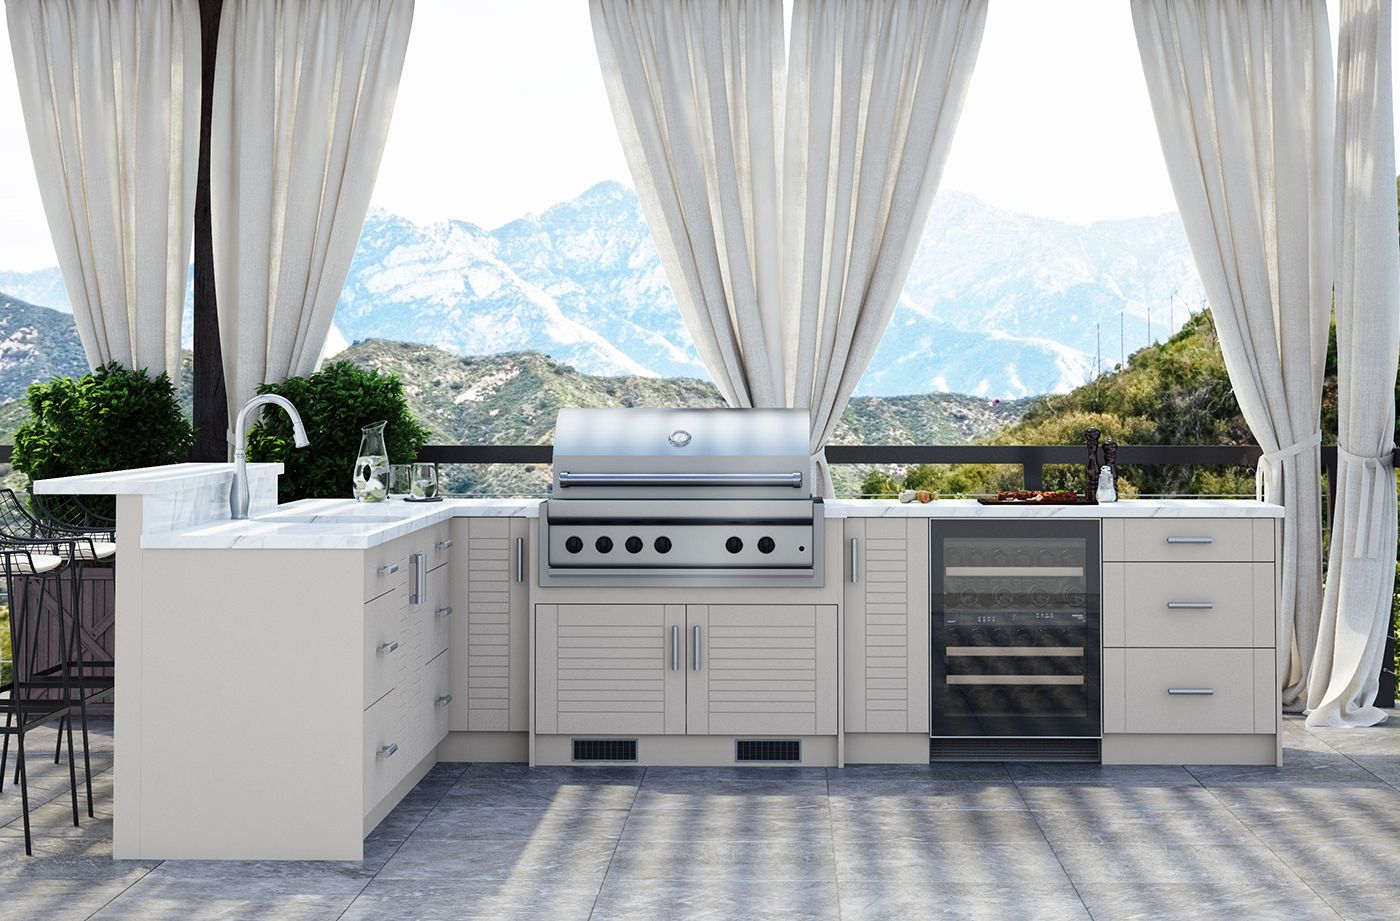 Costco Weatherstrong Outdoor Cabinetry In 2020 Cabinetry Home Appliances Outdoor Kitchen